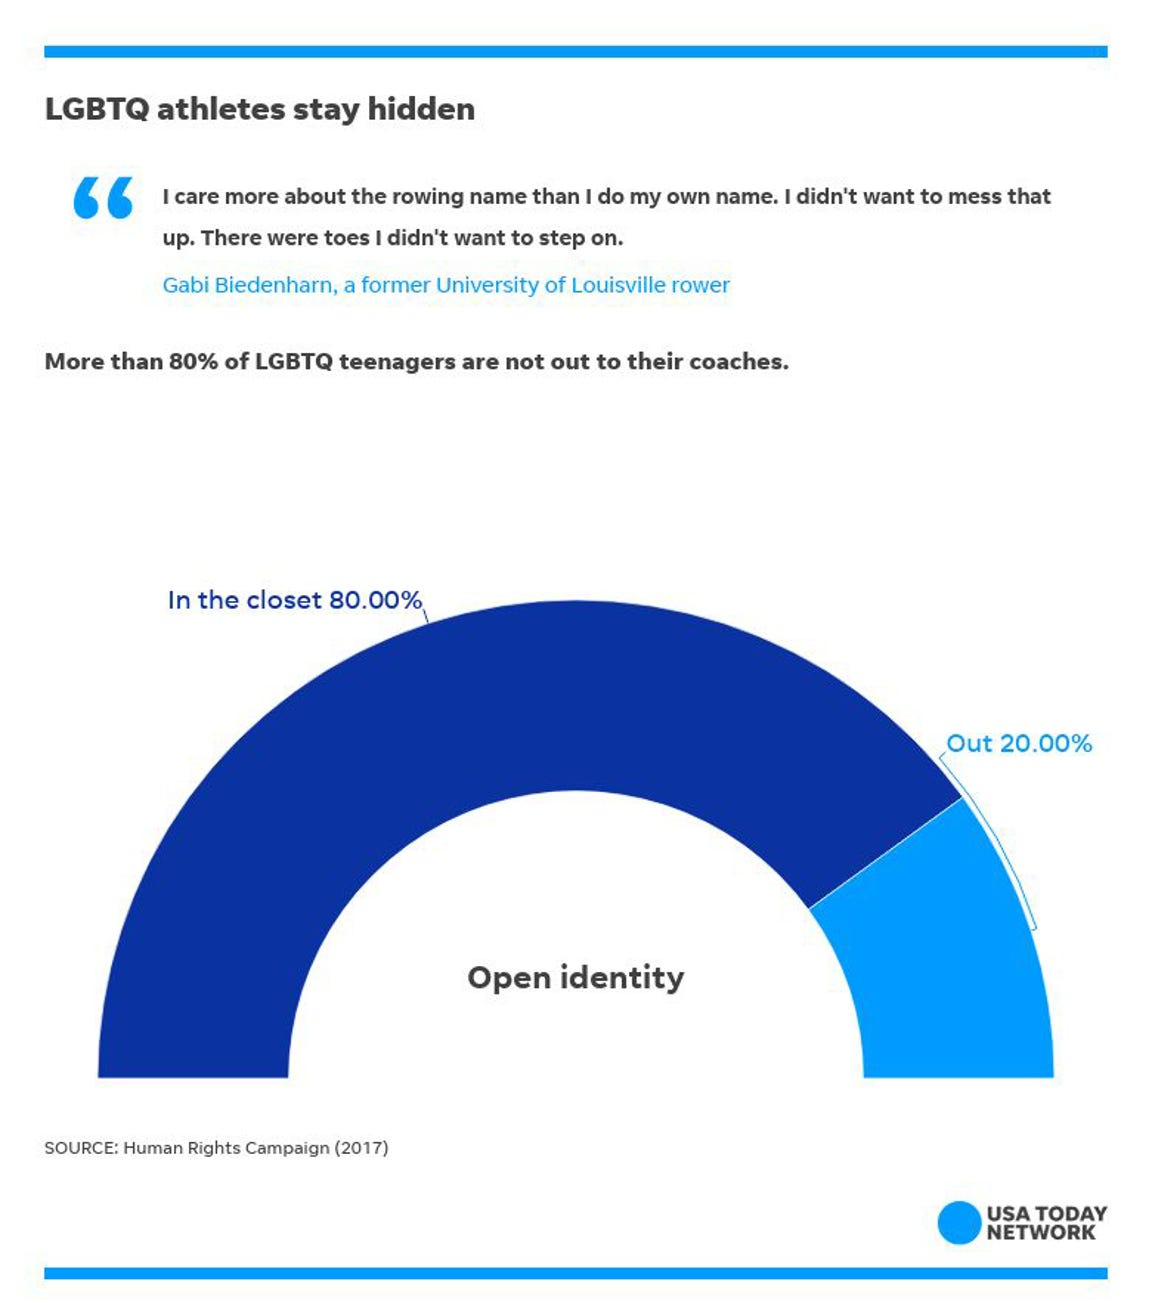 The large majority of LGBTQ high school athletes are not out to their coaches.